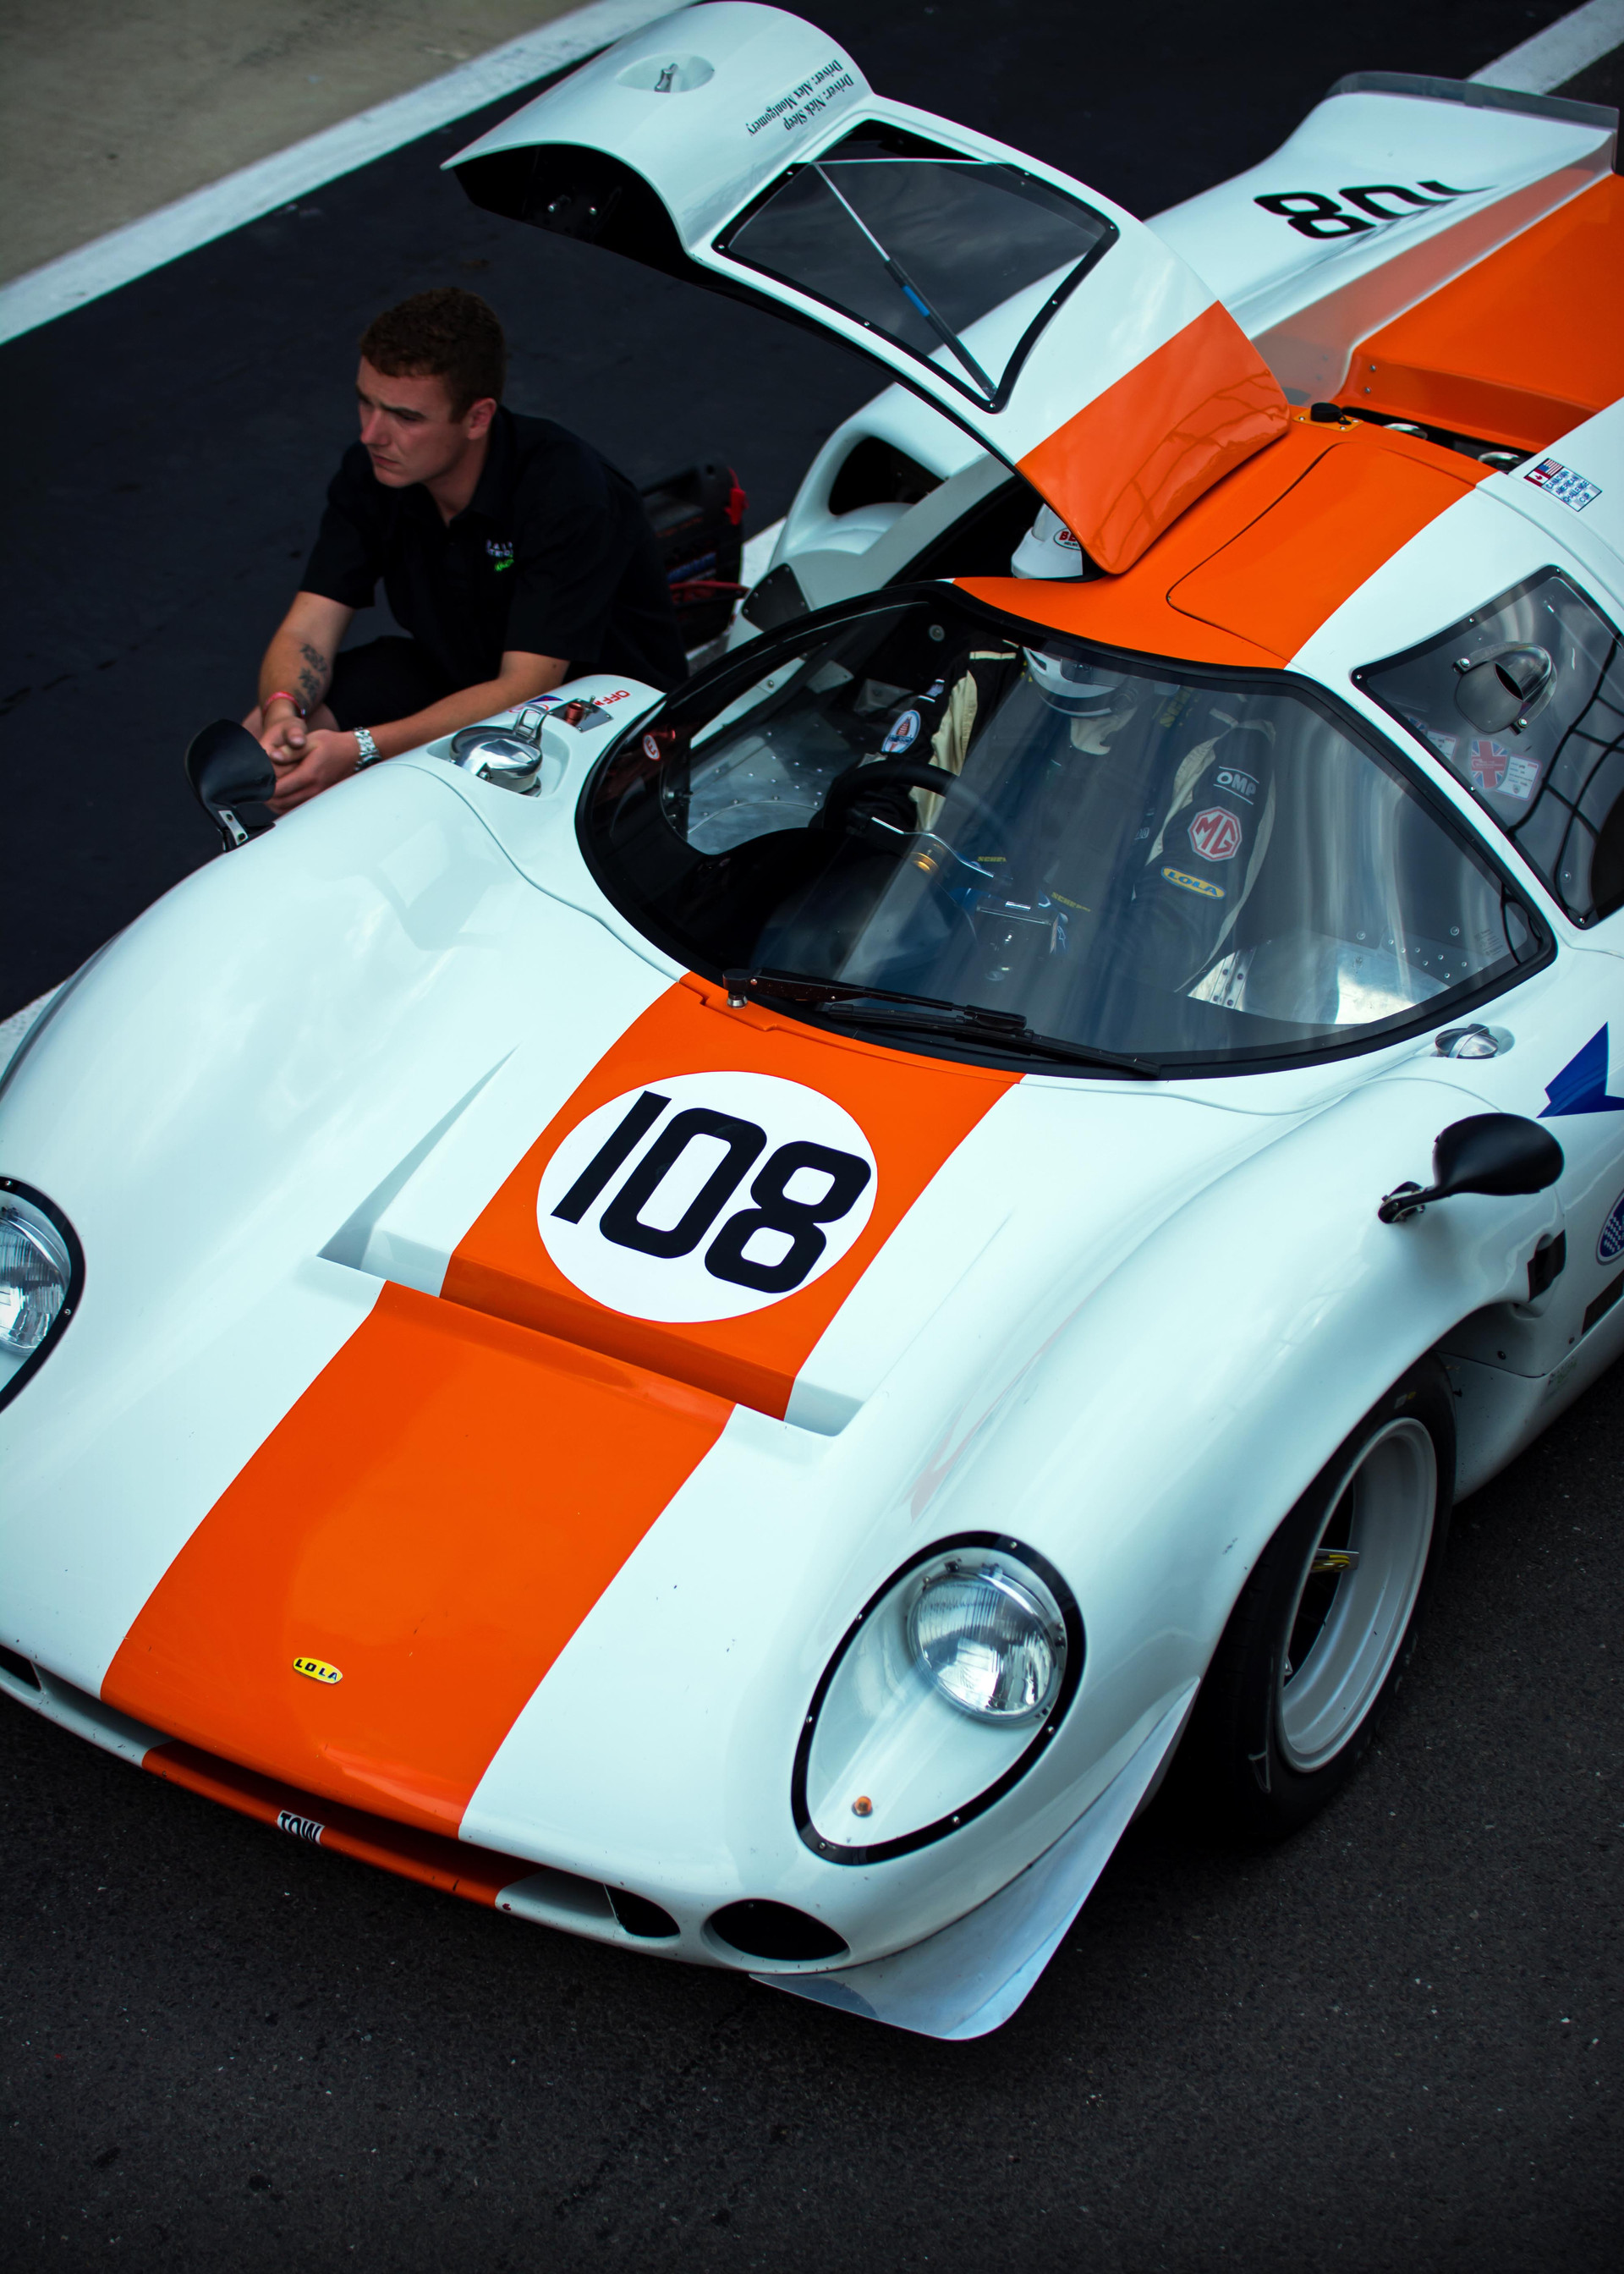 Nick Sleep & Alex Montgomery's 1968 Lola T70 Mk3